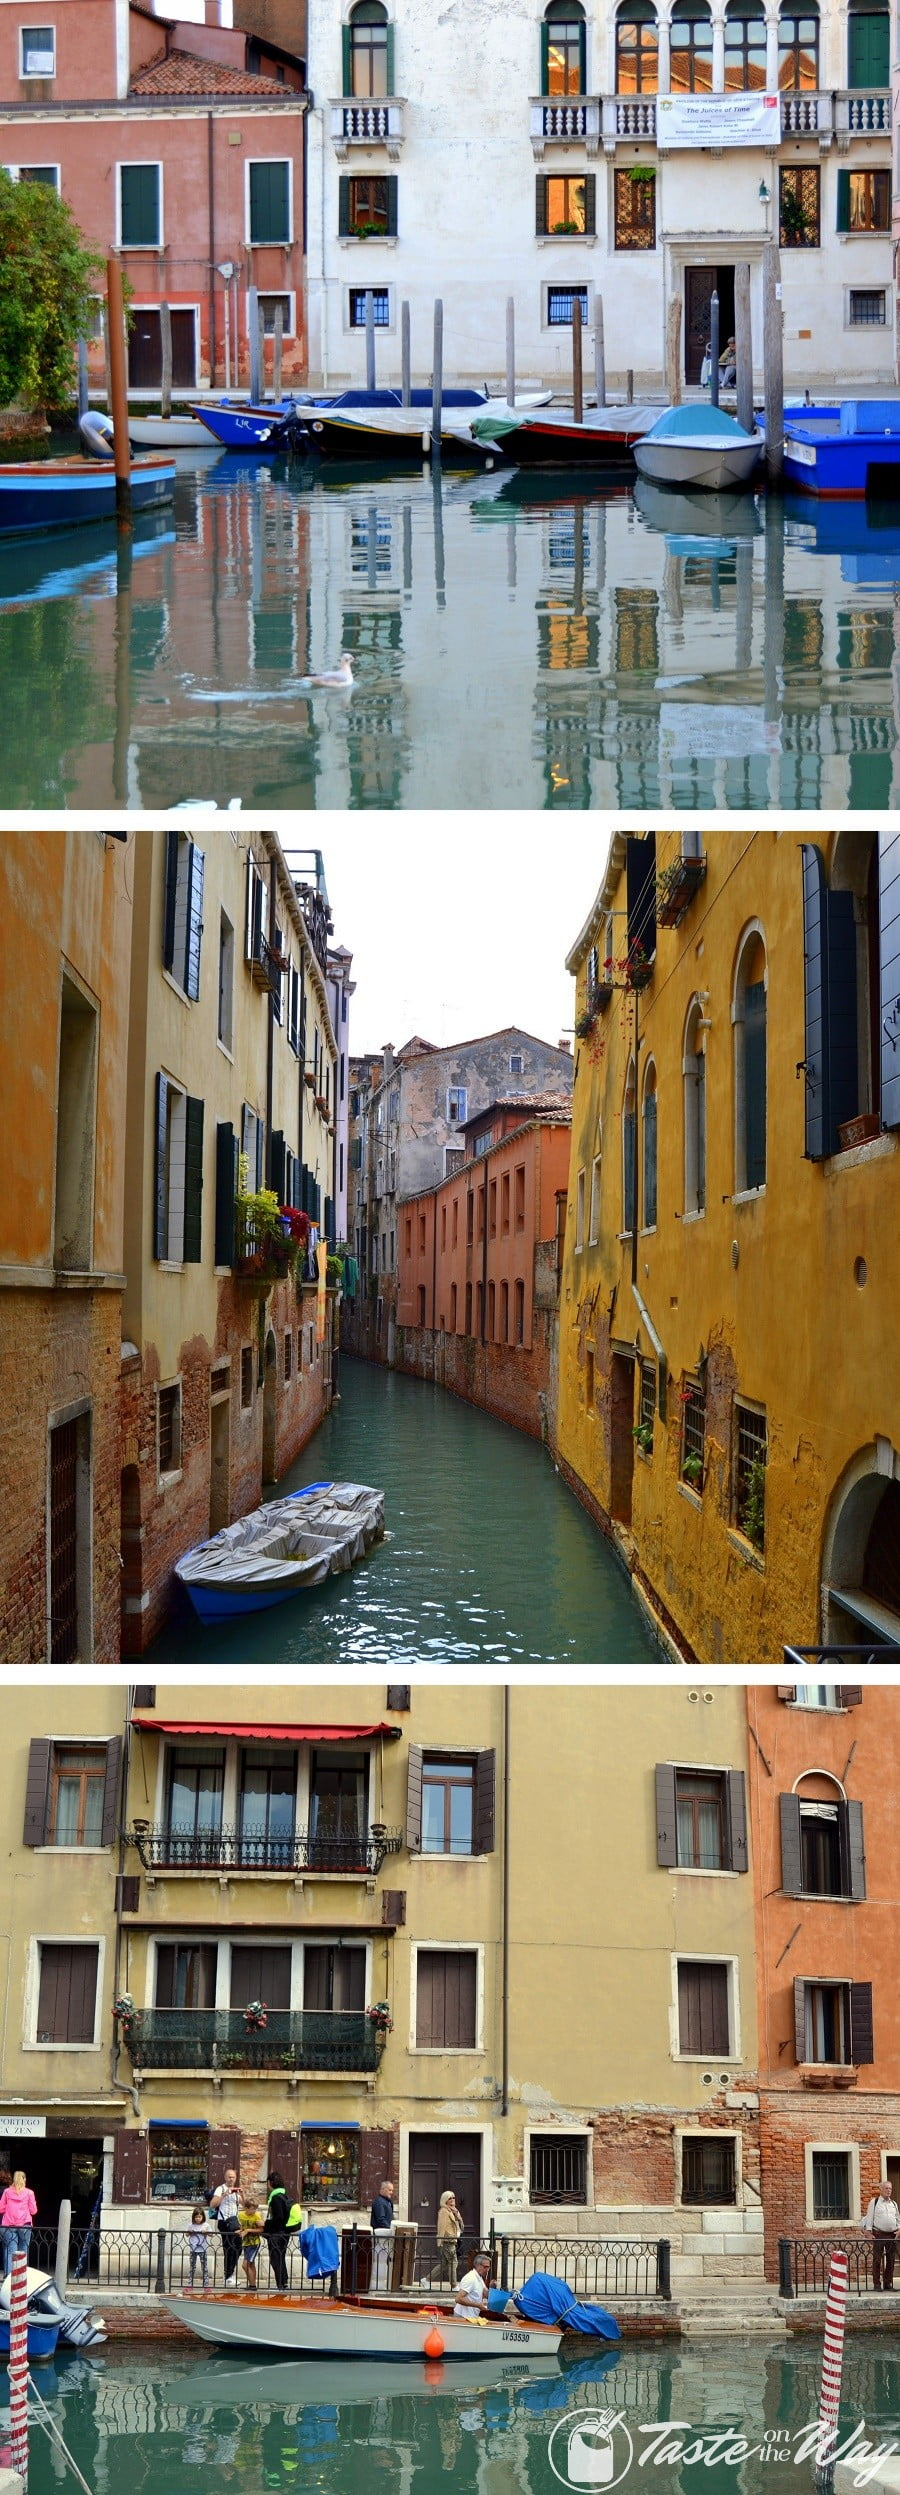 Check out these awesome pictures of canals in #Venice #travel #photography @tasteontheway